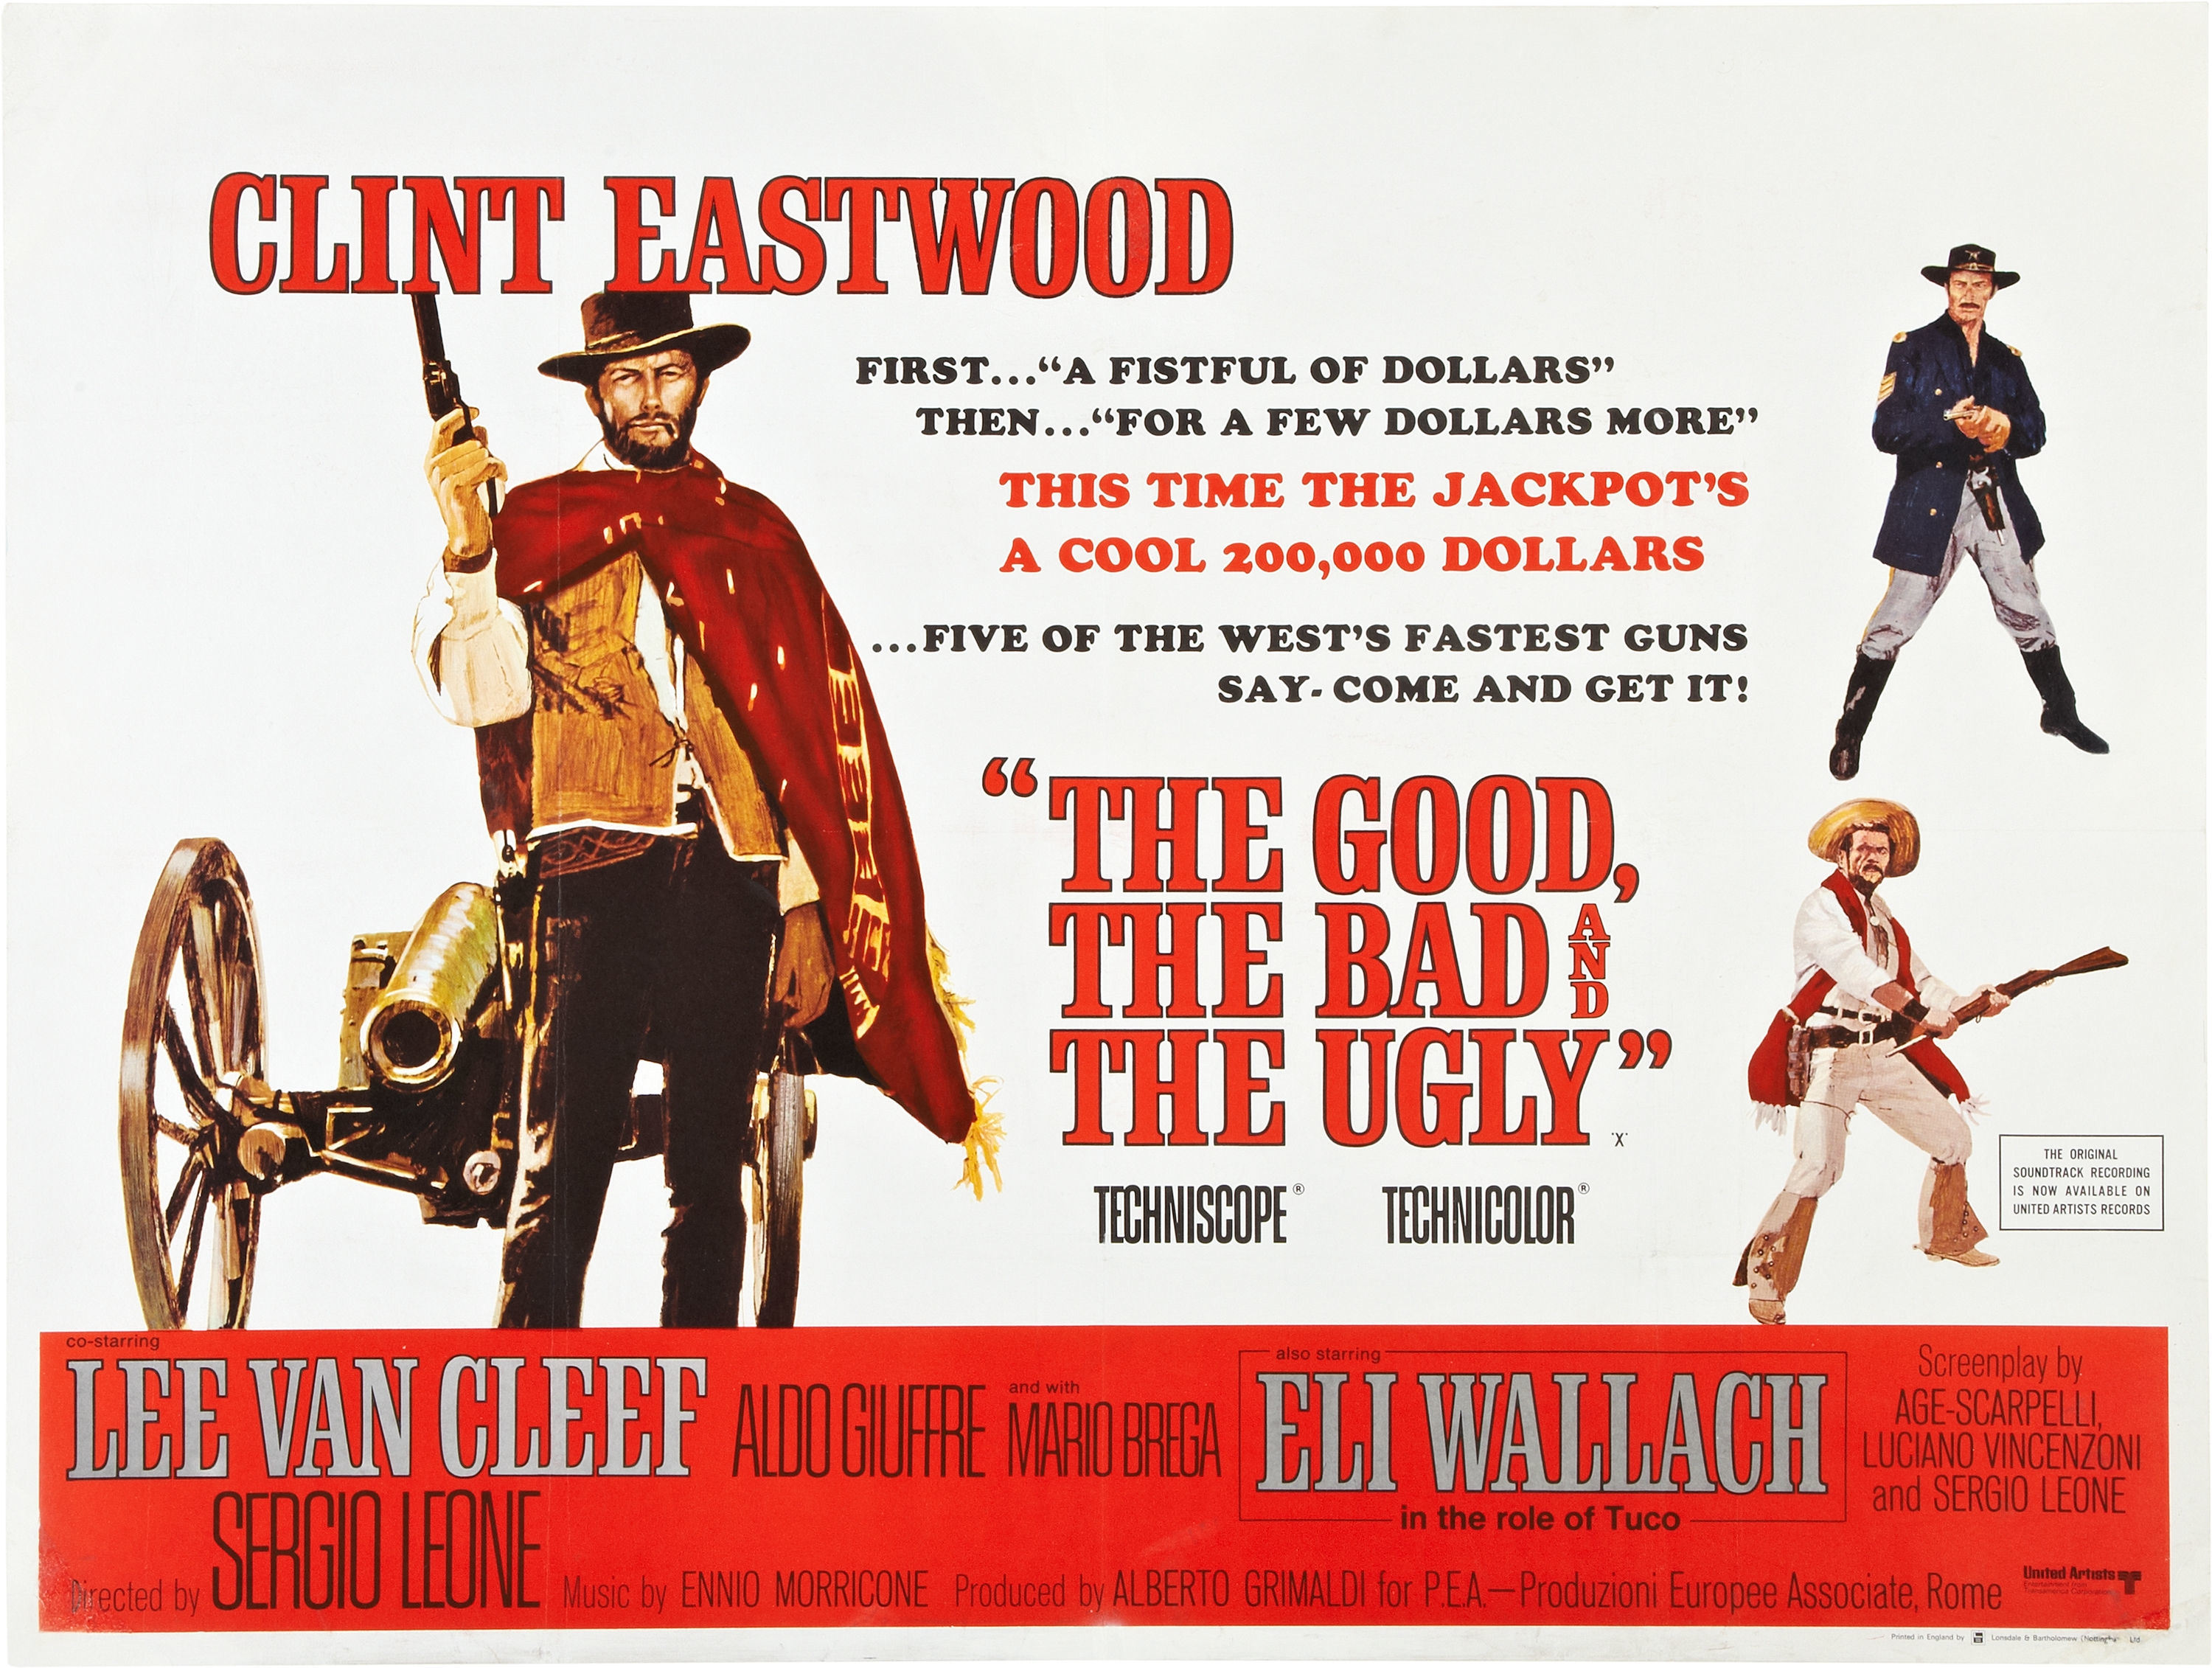 clint eastwood Movie posters HD Wallpaper